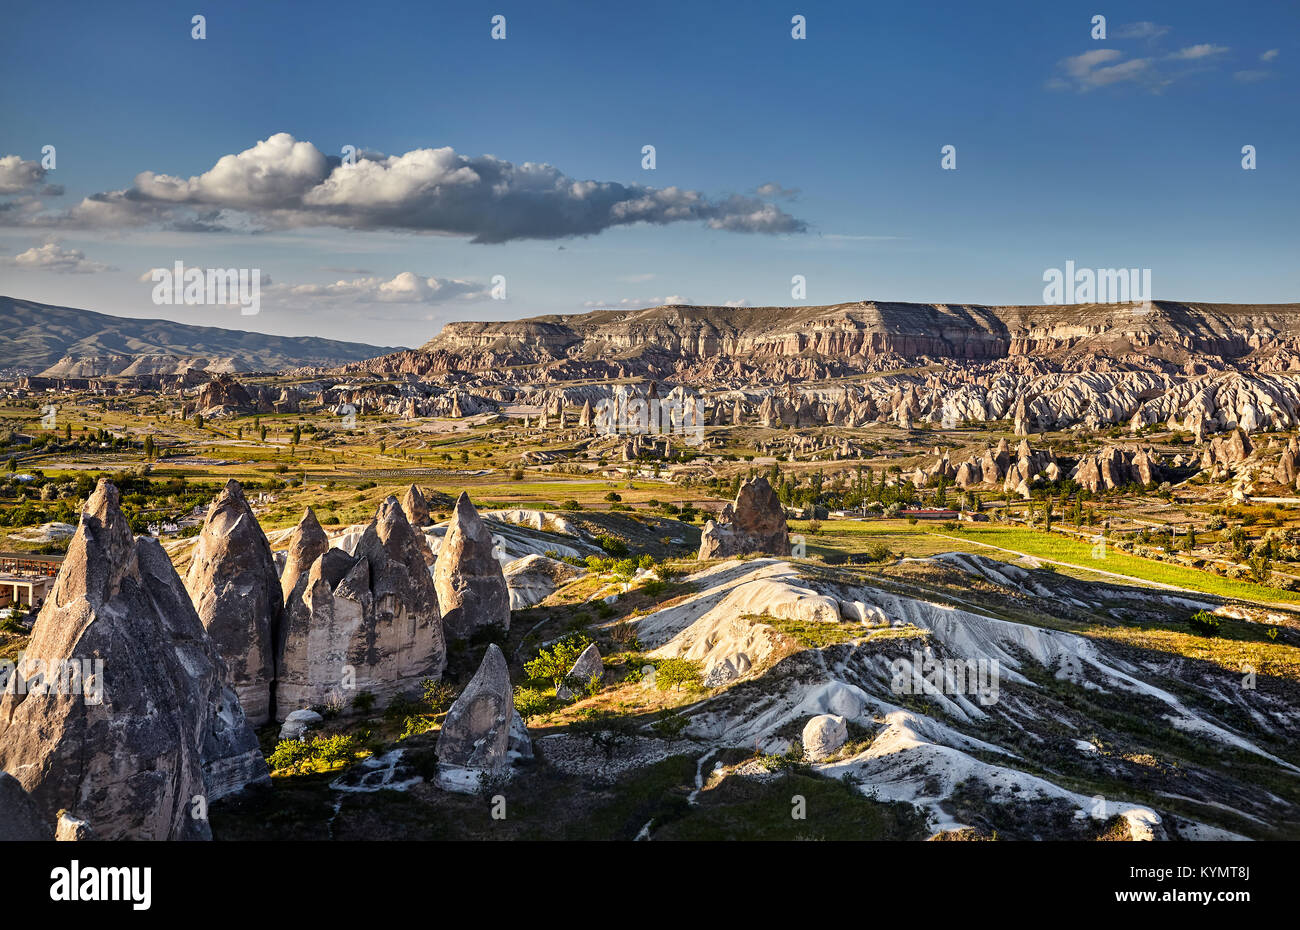 Beautiful landscape of ancient geological formation called fairy chimneys at sunset in Cappadocia valley, Turkey - Stock Image